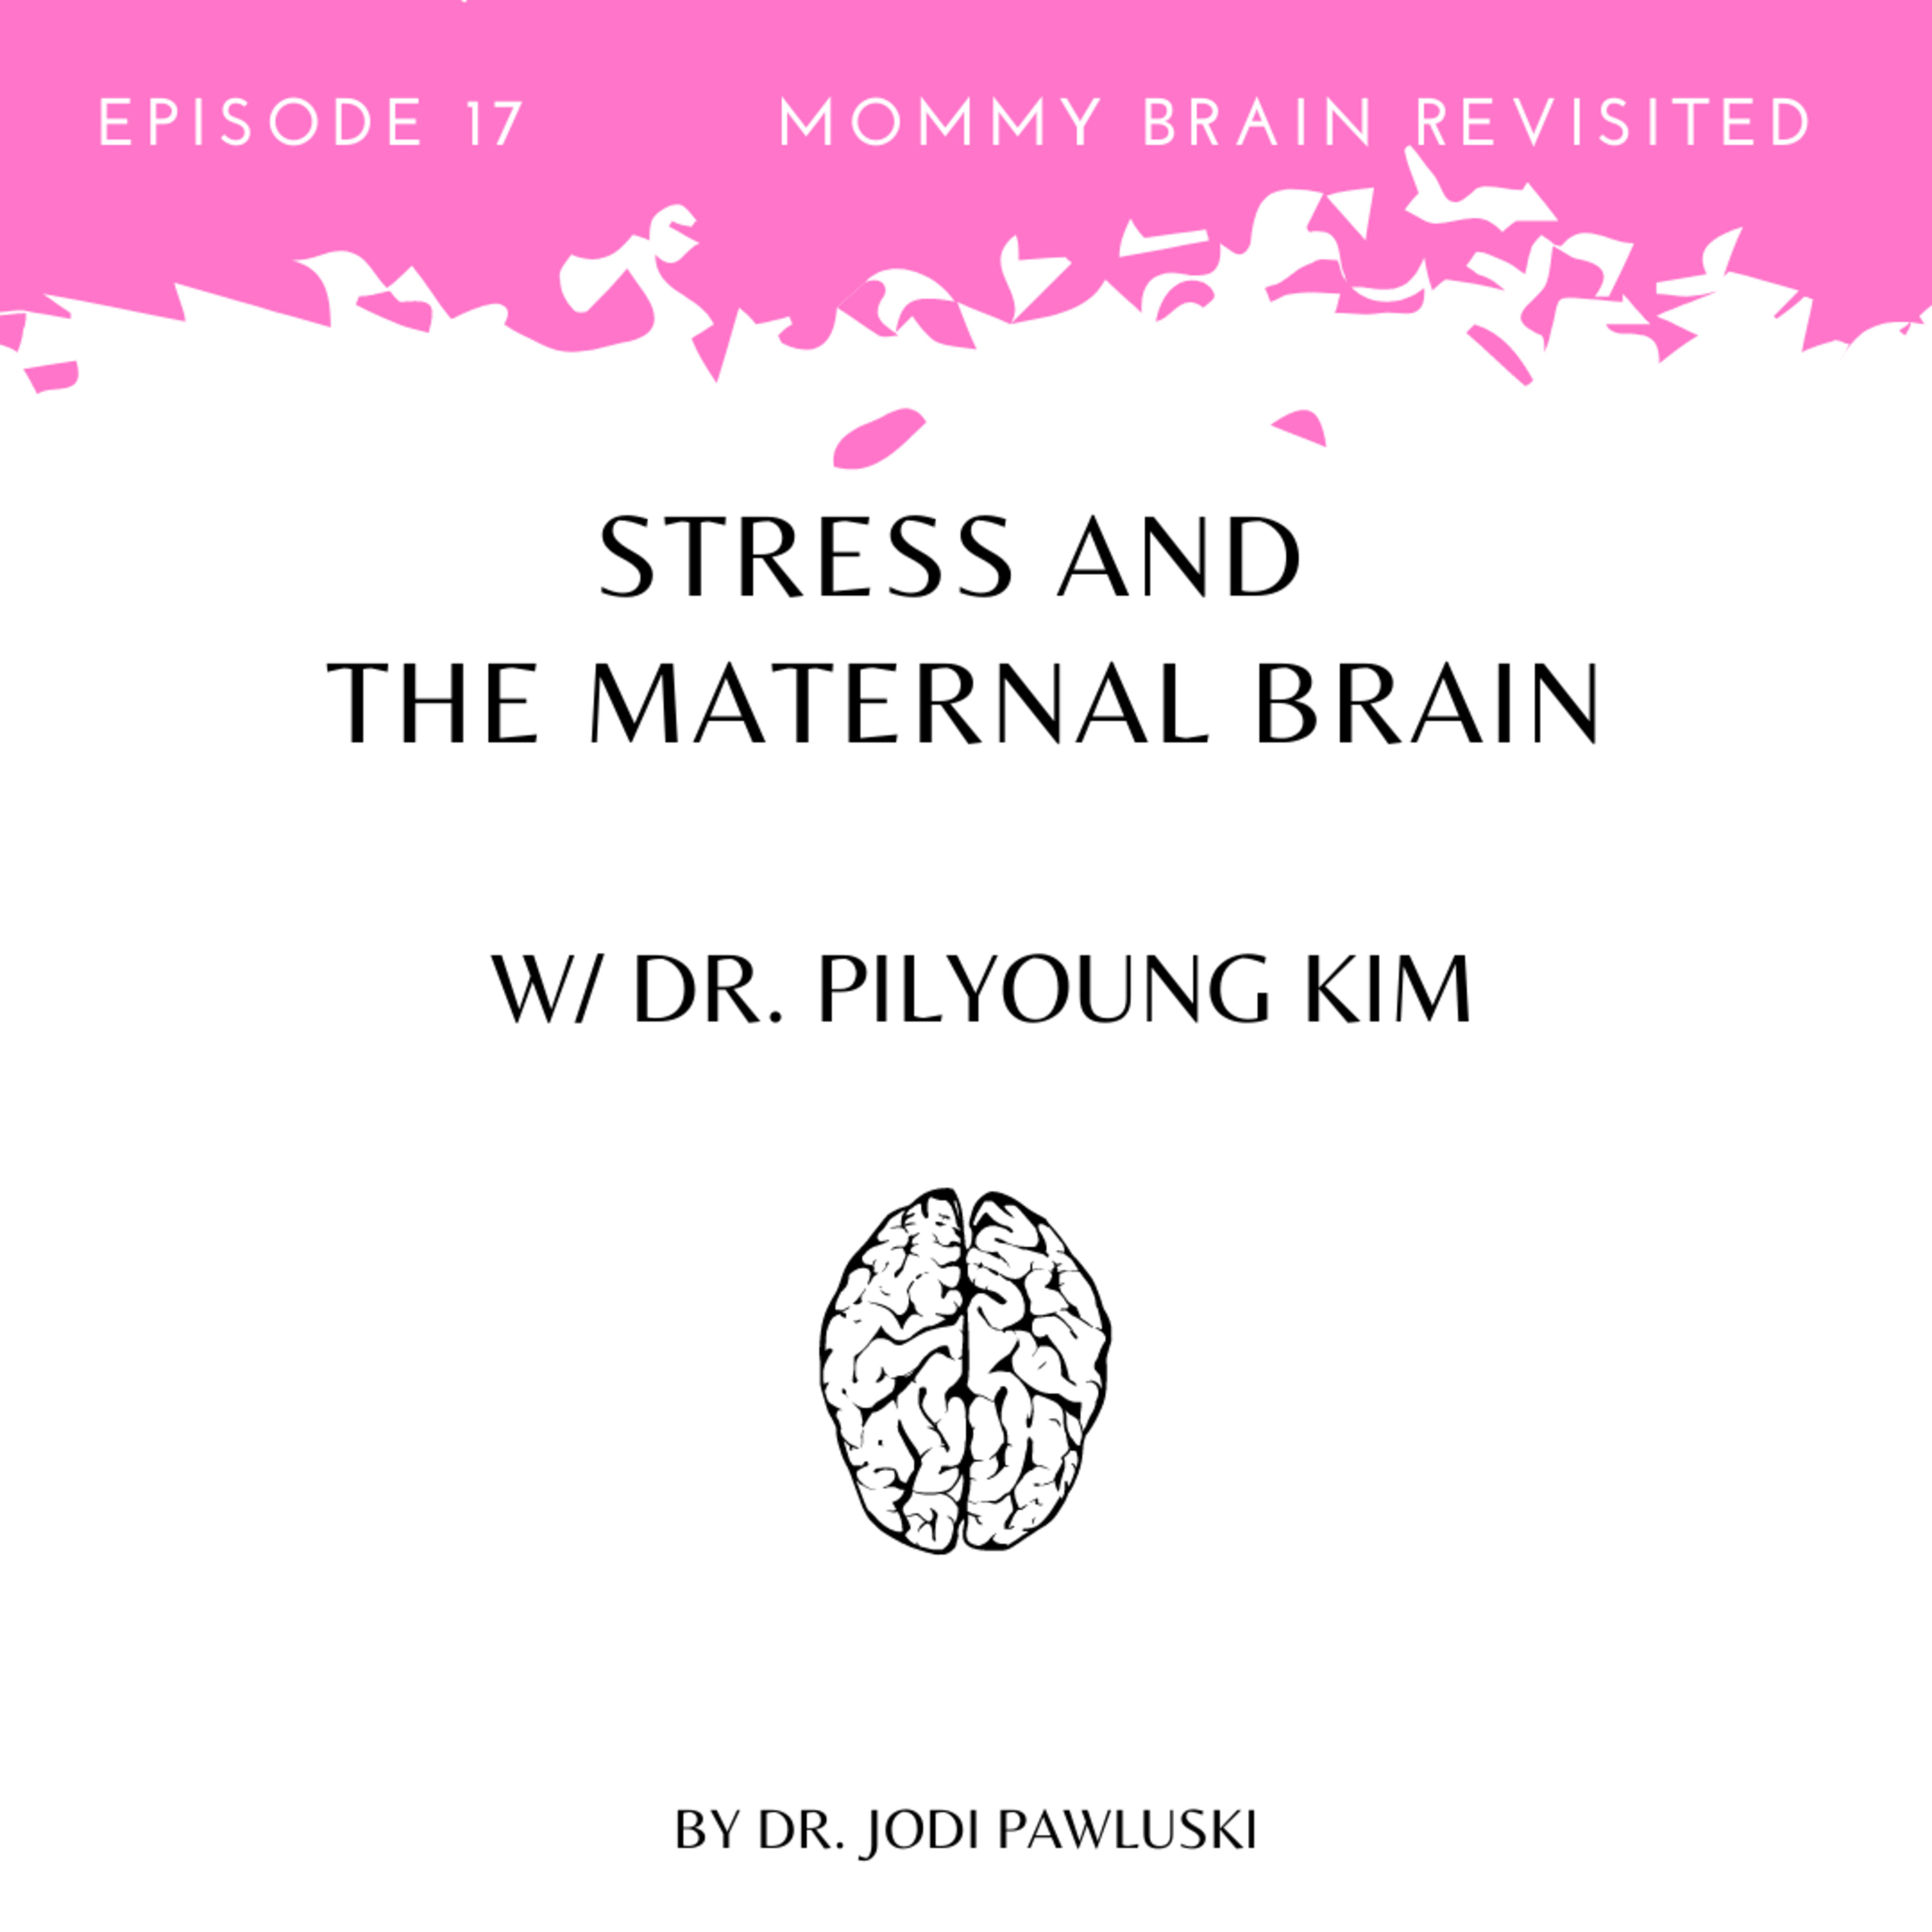 Stress and the Maternal Brain